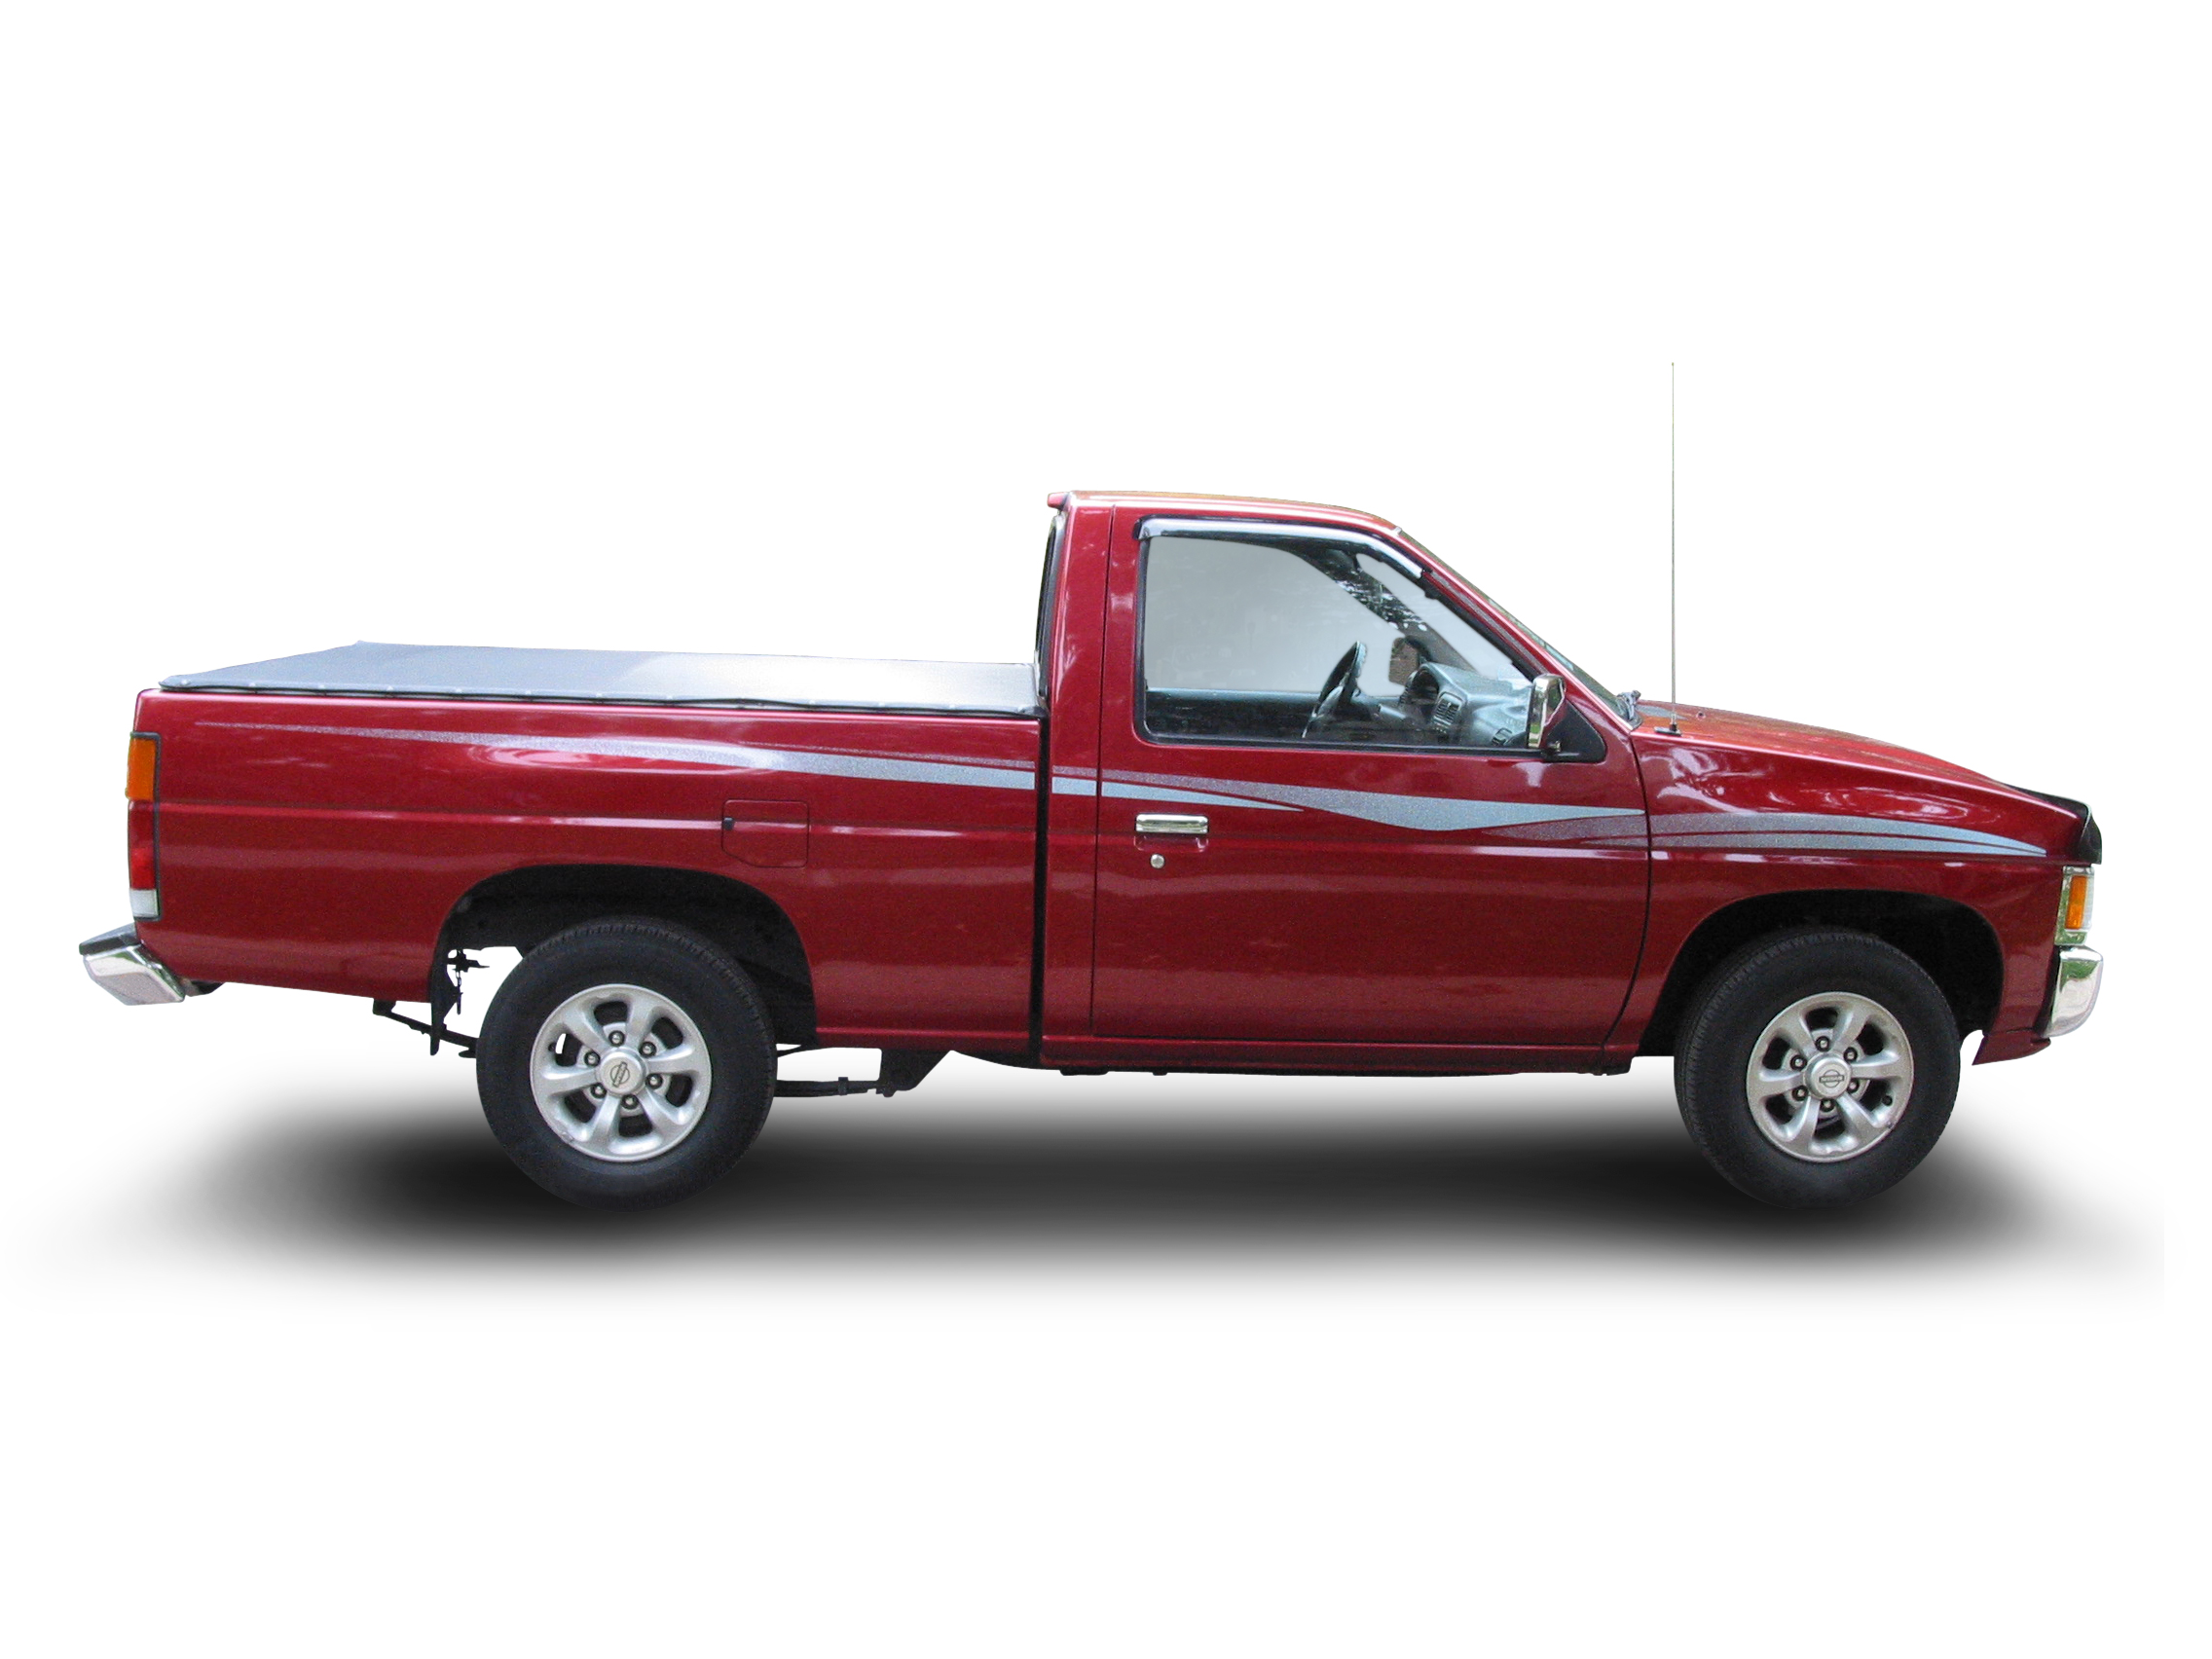 pickup truck free stock photo image picture red 4x4 pickup